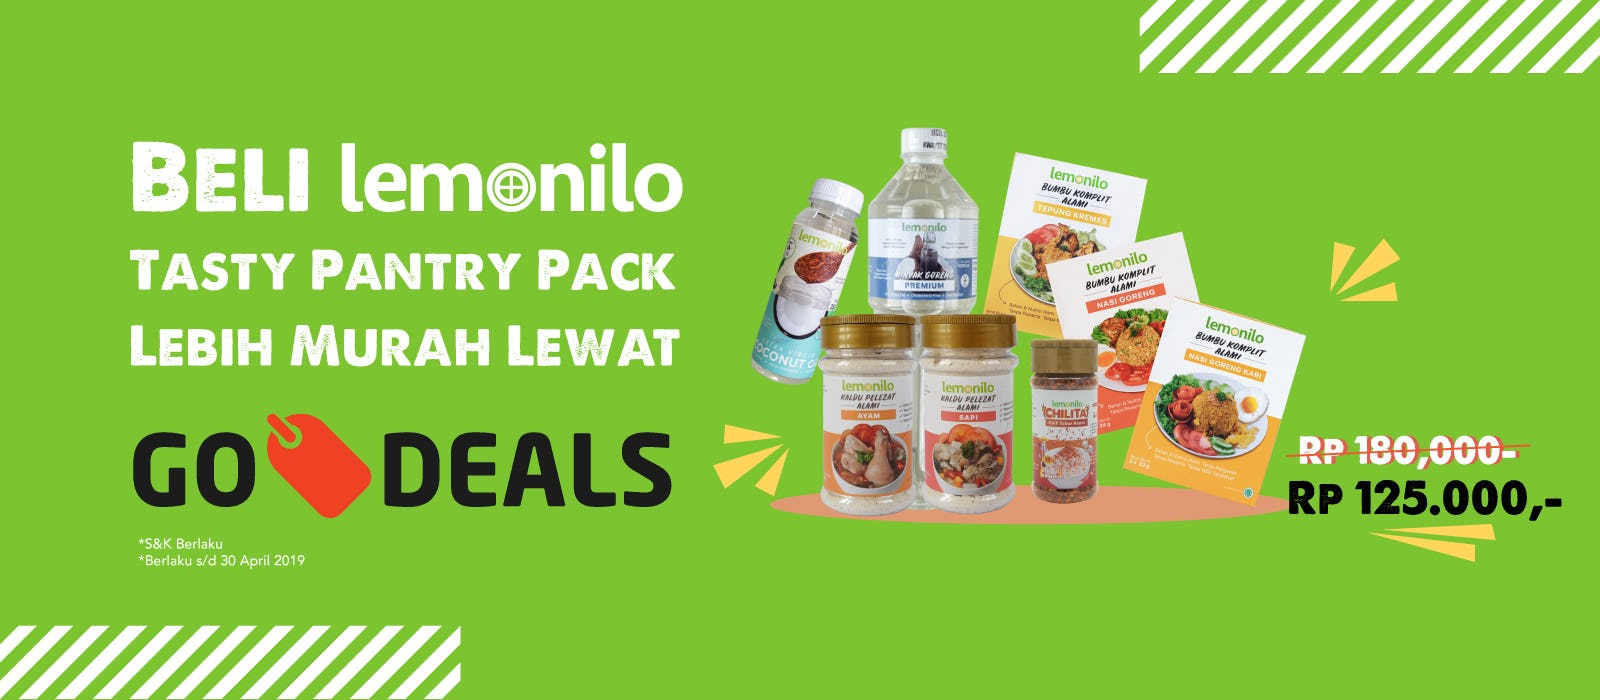 Lemonilo Tasty Pantry Pack Harga Spesial Lewat Go-Deals